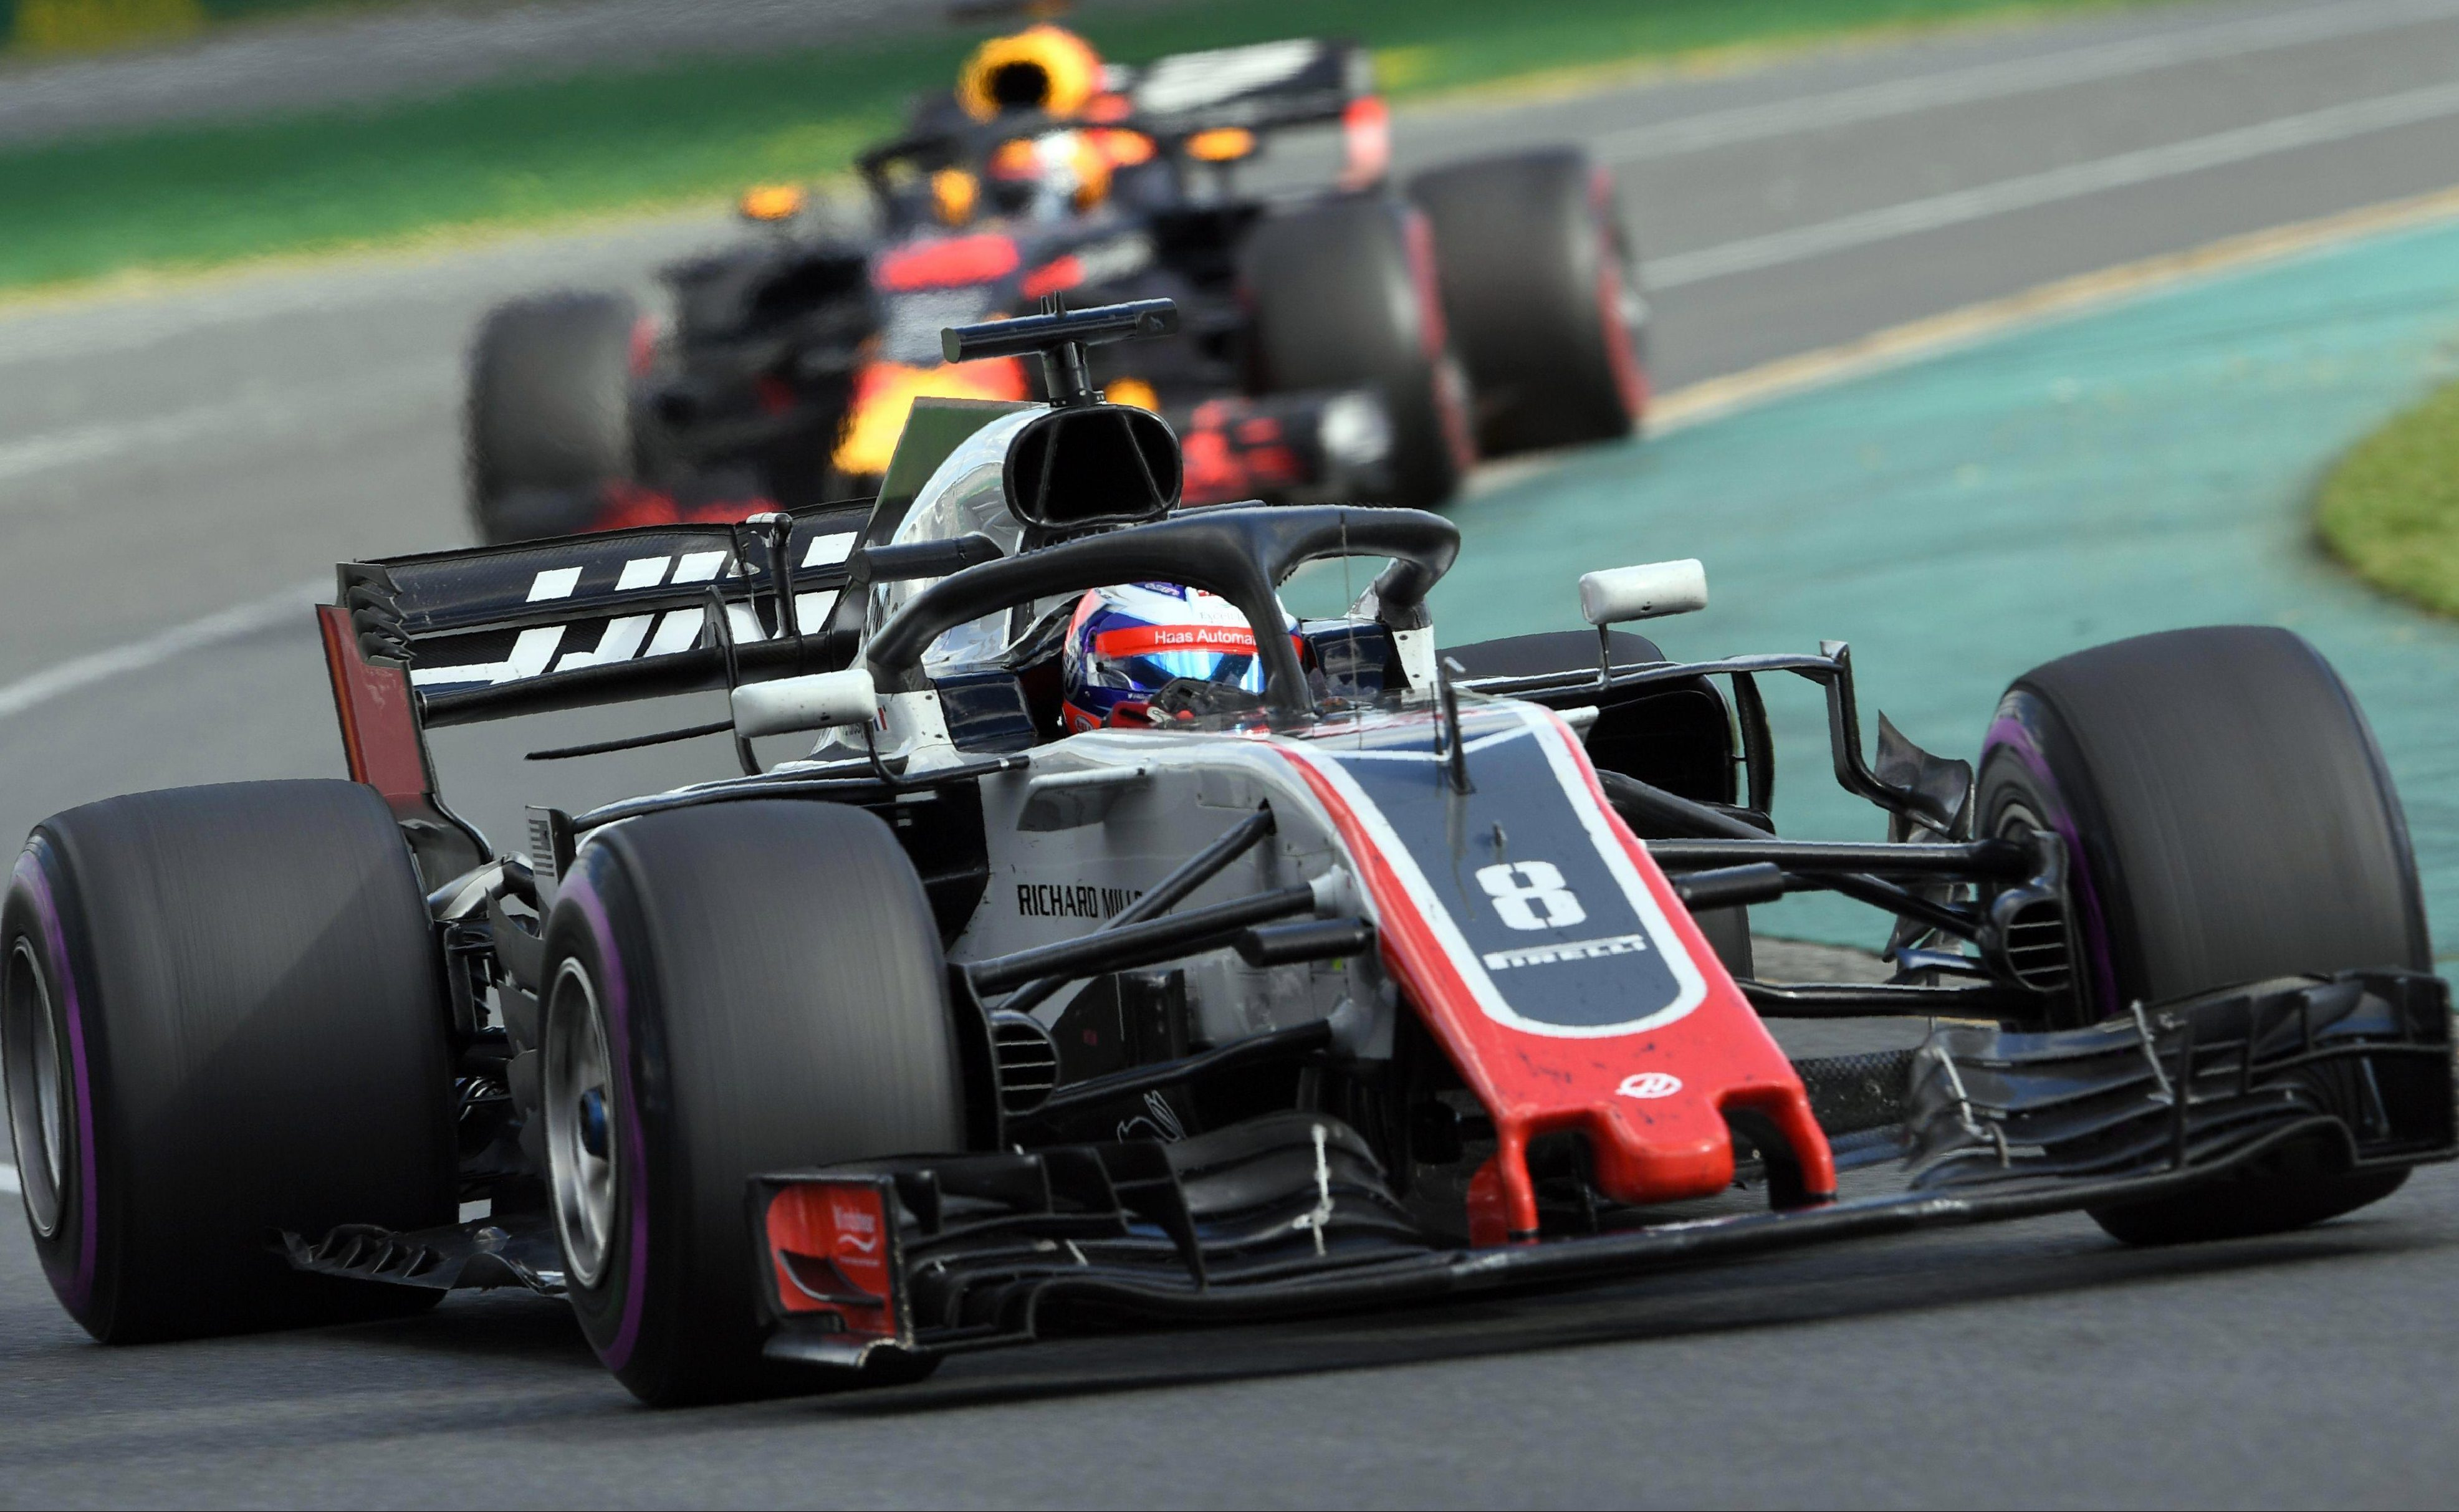 Grosjean looked in good nick in the Australian GP after starting in seventh place on the grid